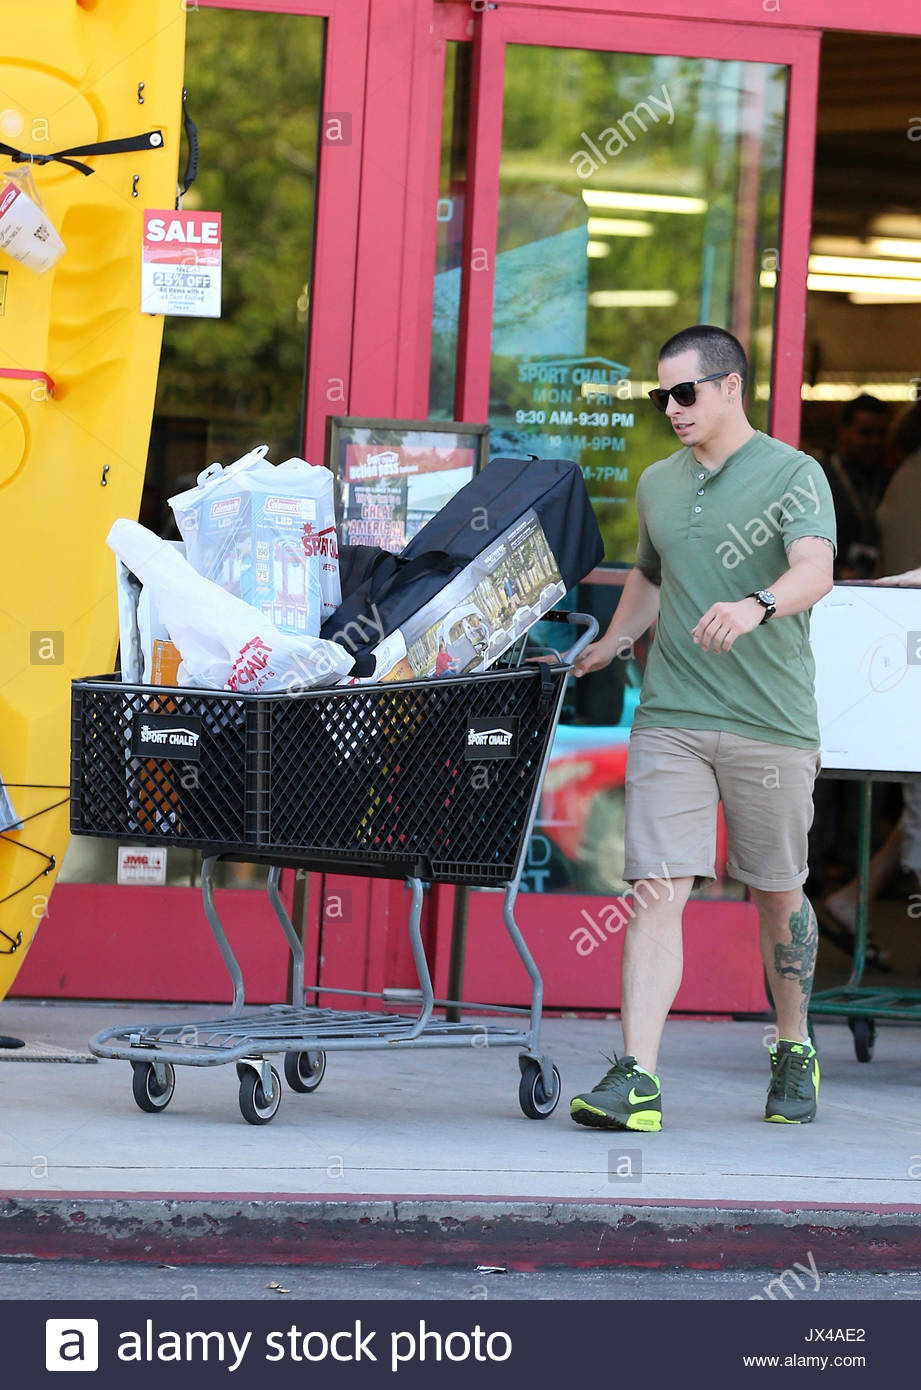 Casper Smart was out and about today shopping for c&ing supplies and work out gear at Sport Chalet. He purchased a tent as well as a UFC punching bag ... & Casper Smart. Casper Smart was out and about today shopping for ...